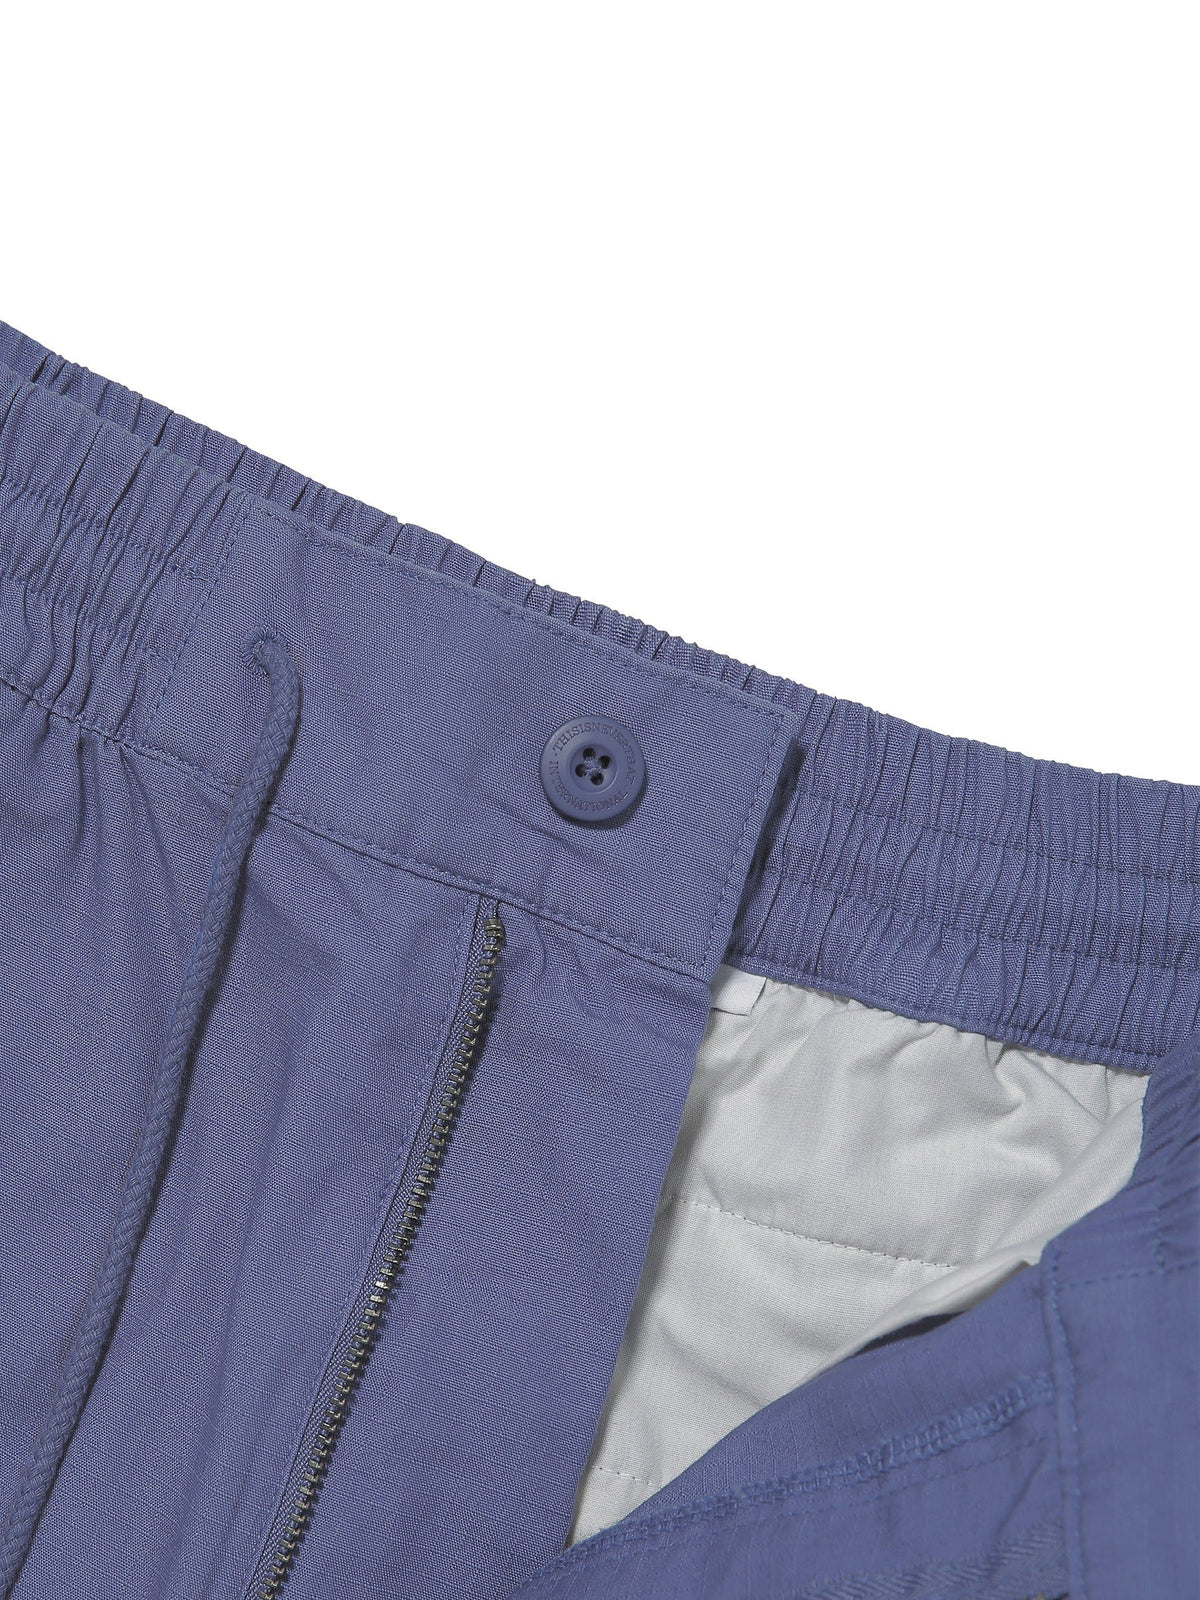 M65 Cargo Short - thisisneverthat